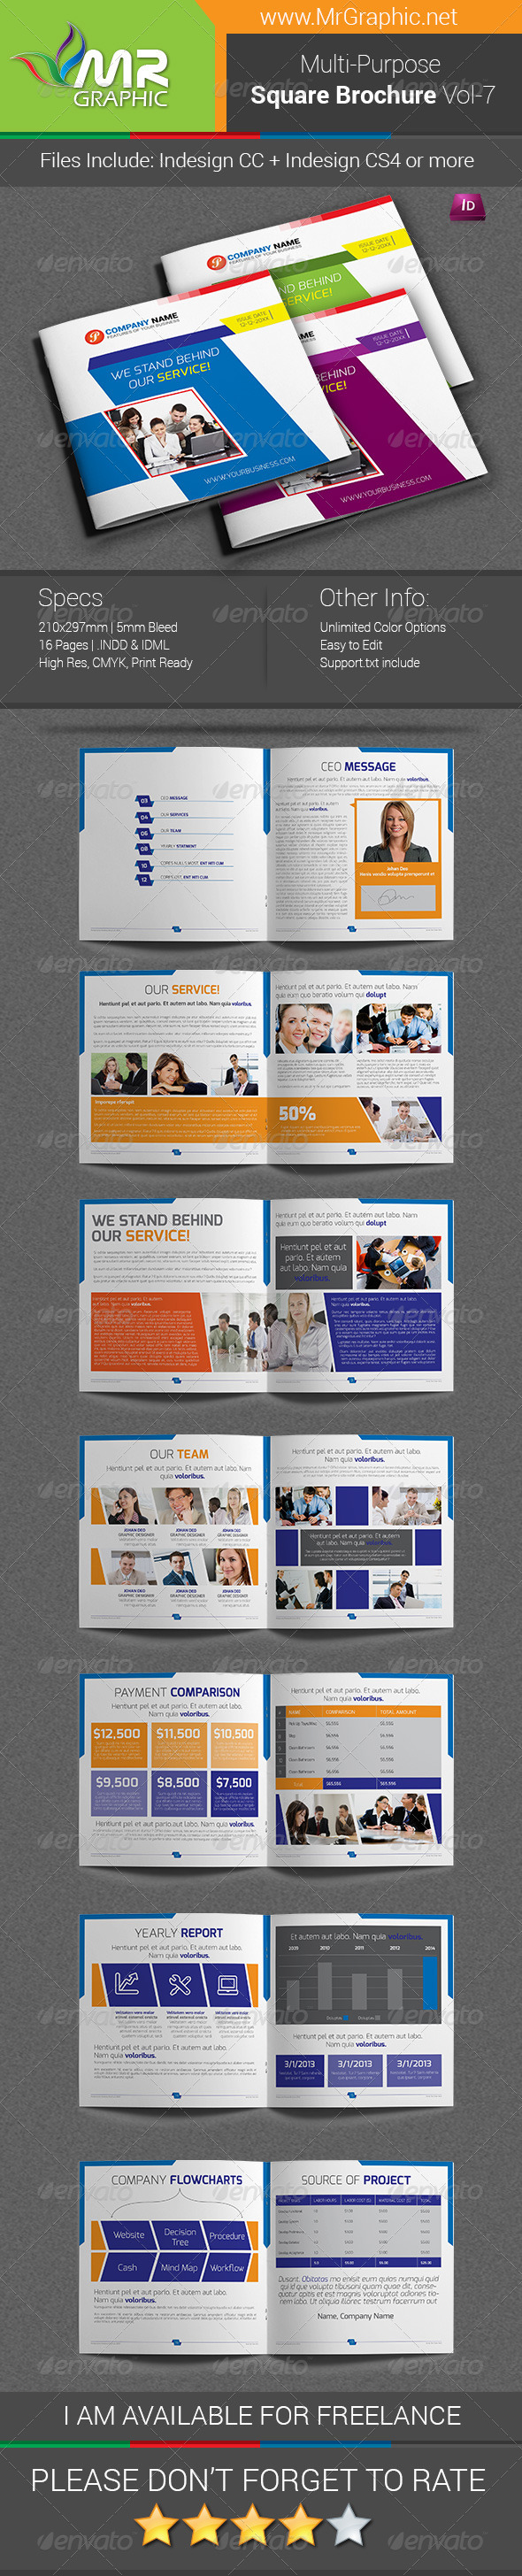 Multipurpose Square Brochure Template Vol-07 - Corporate Brochures